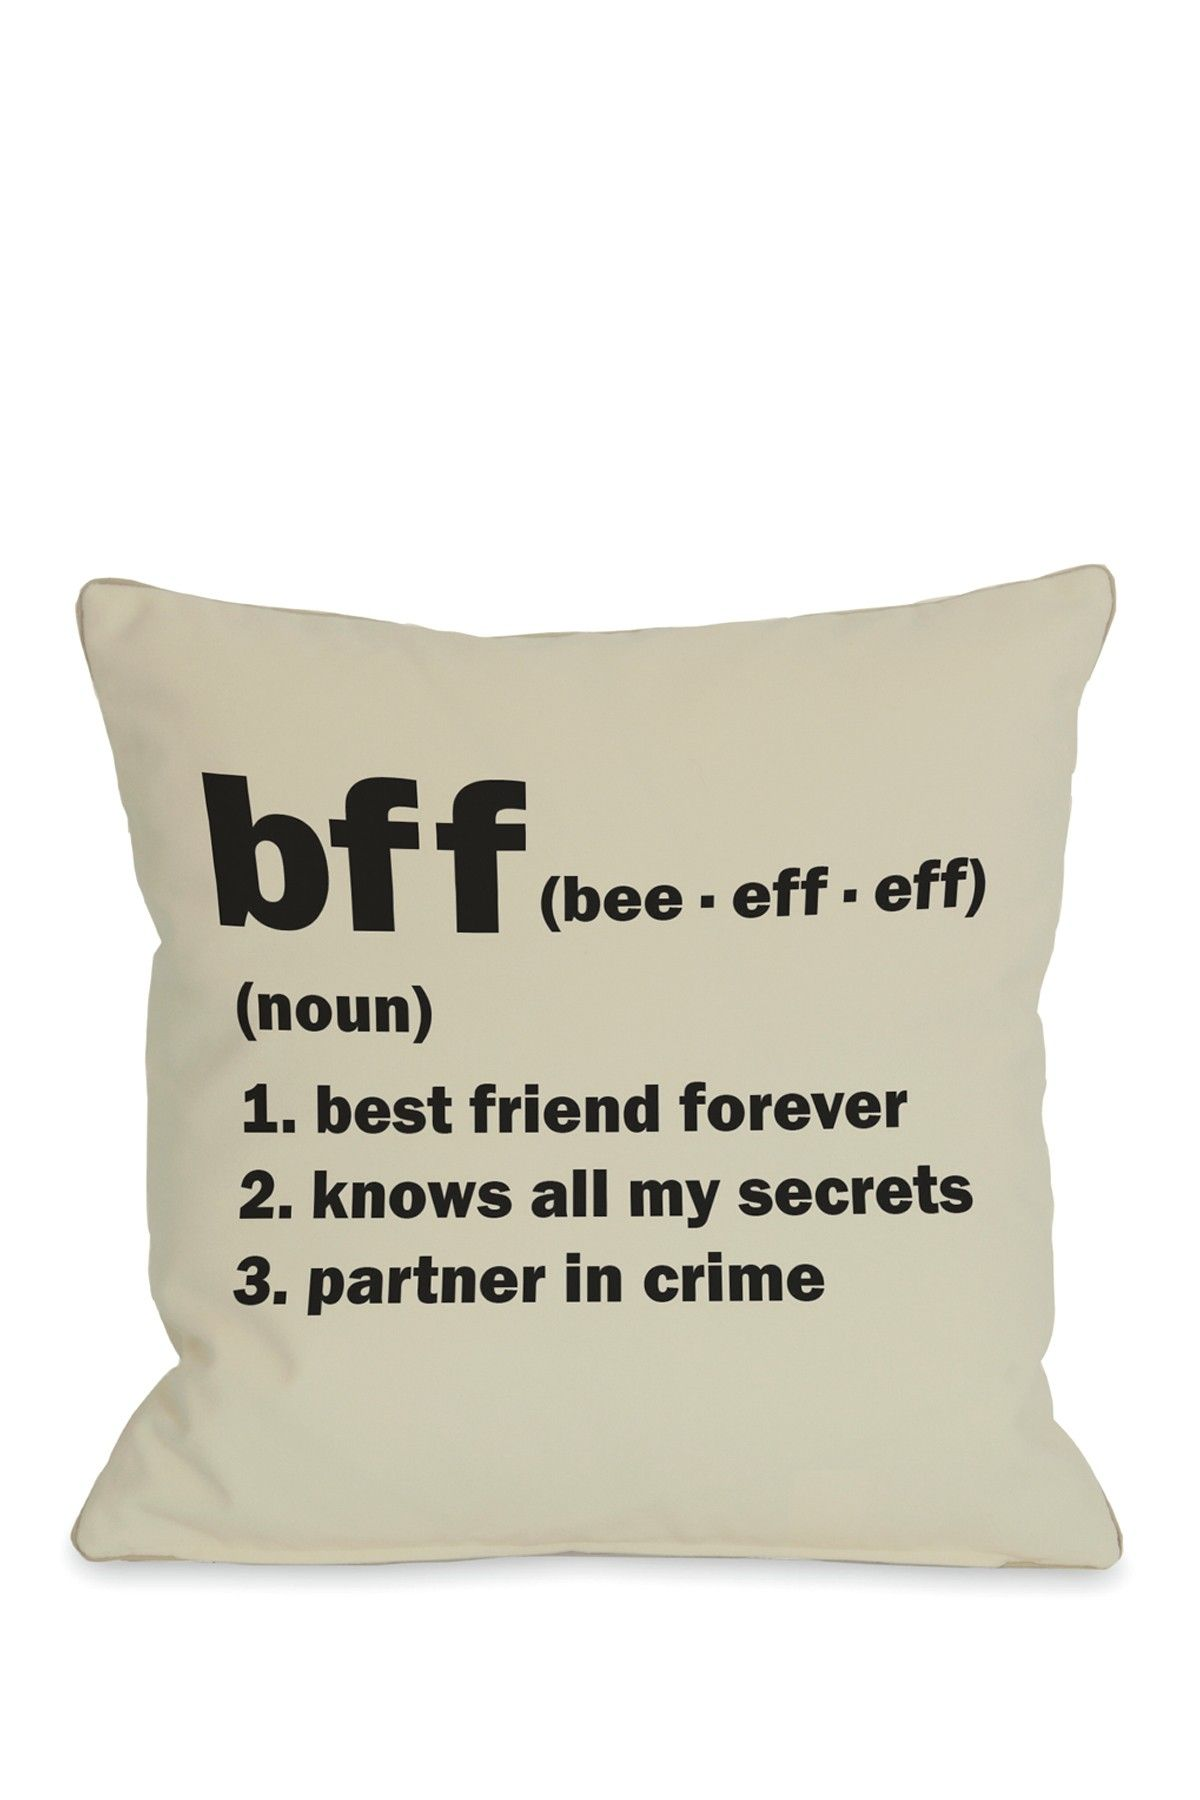 BFF Definition Square Pillow, I want this and my friend has to have one too